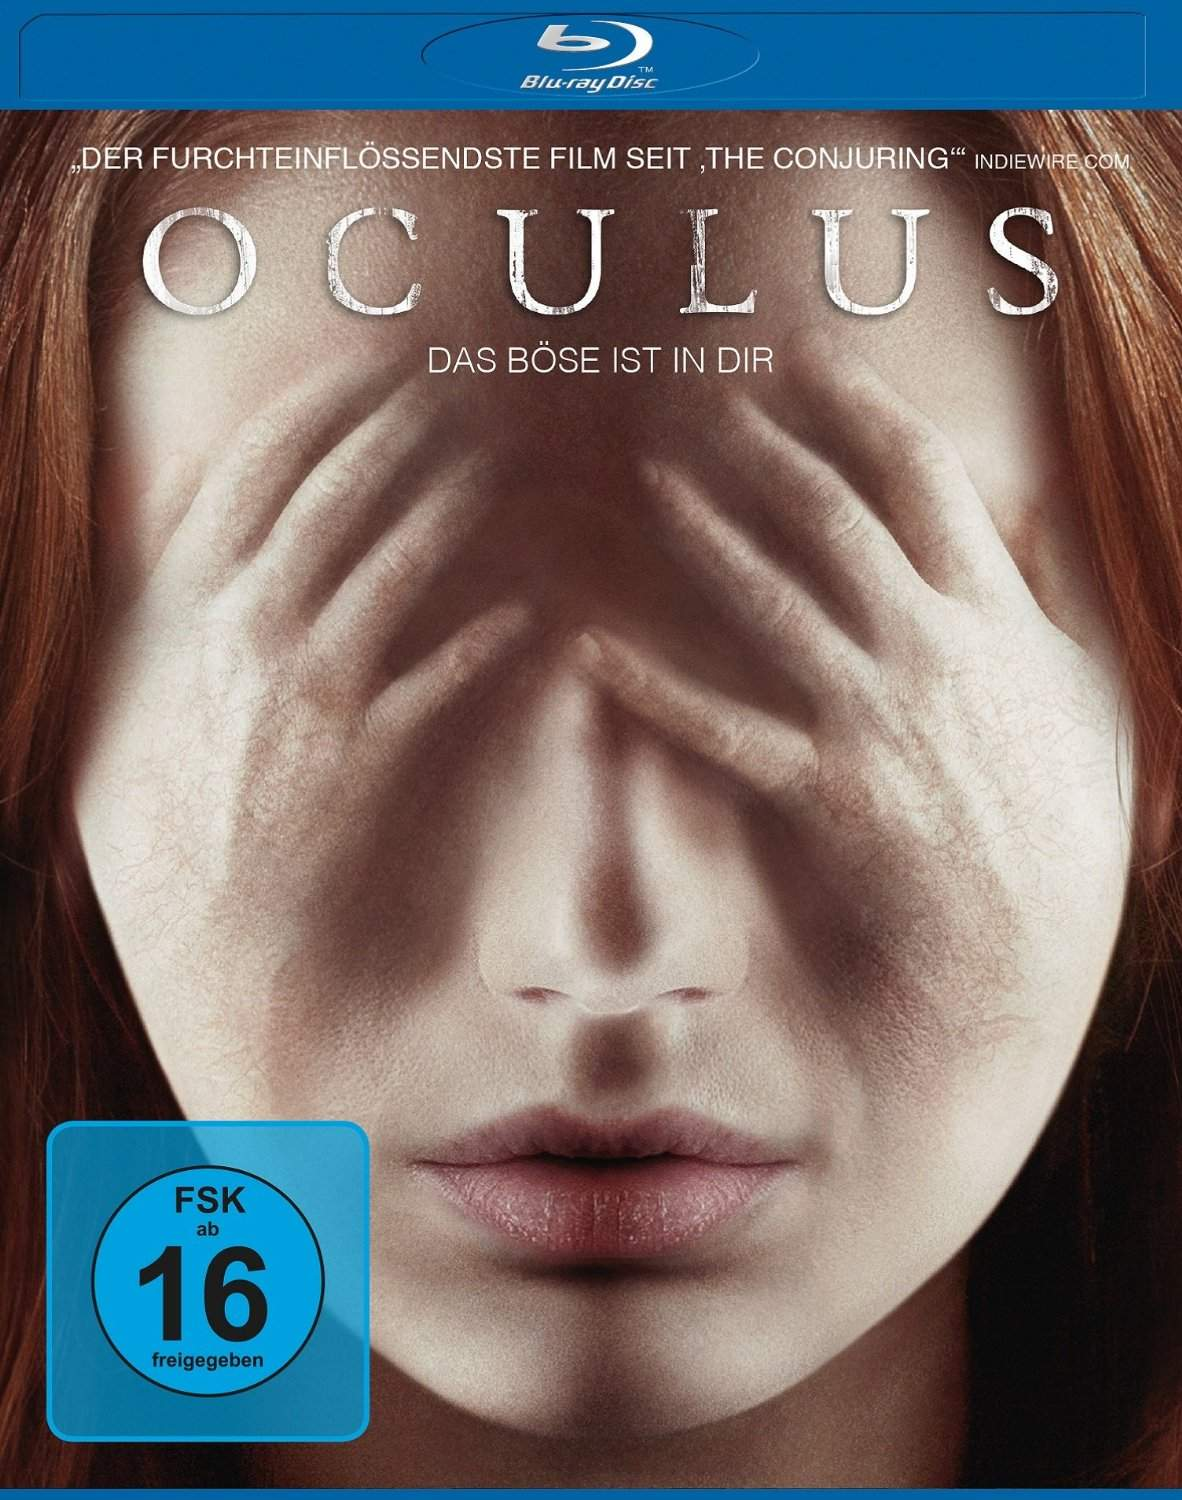 Zhyhbb9g in Oculus 2013 German DL 1080p BluRay x264